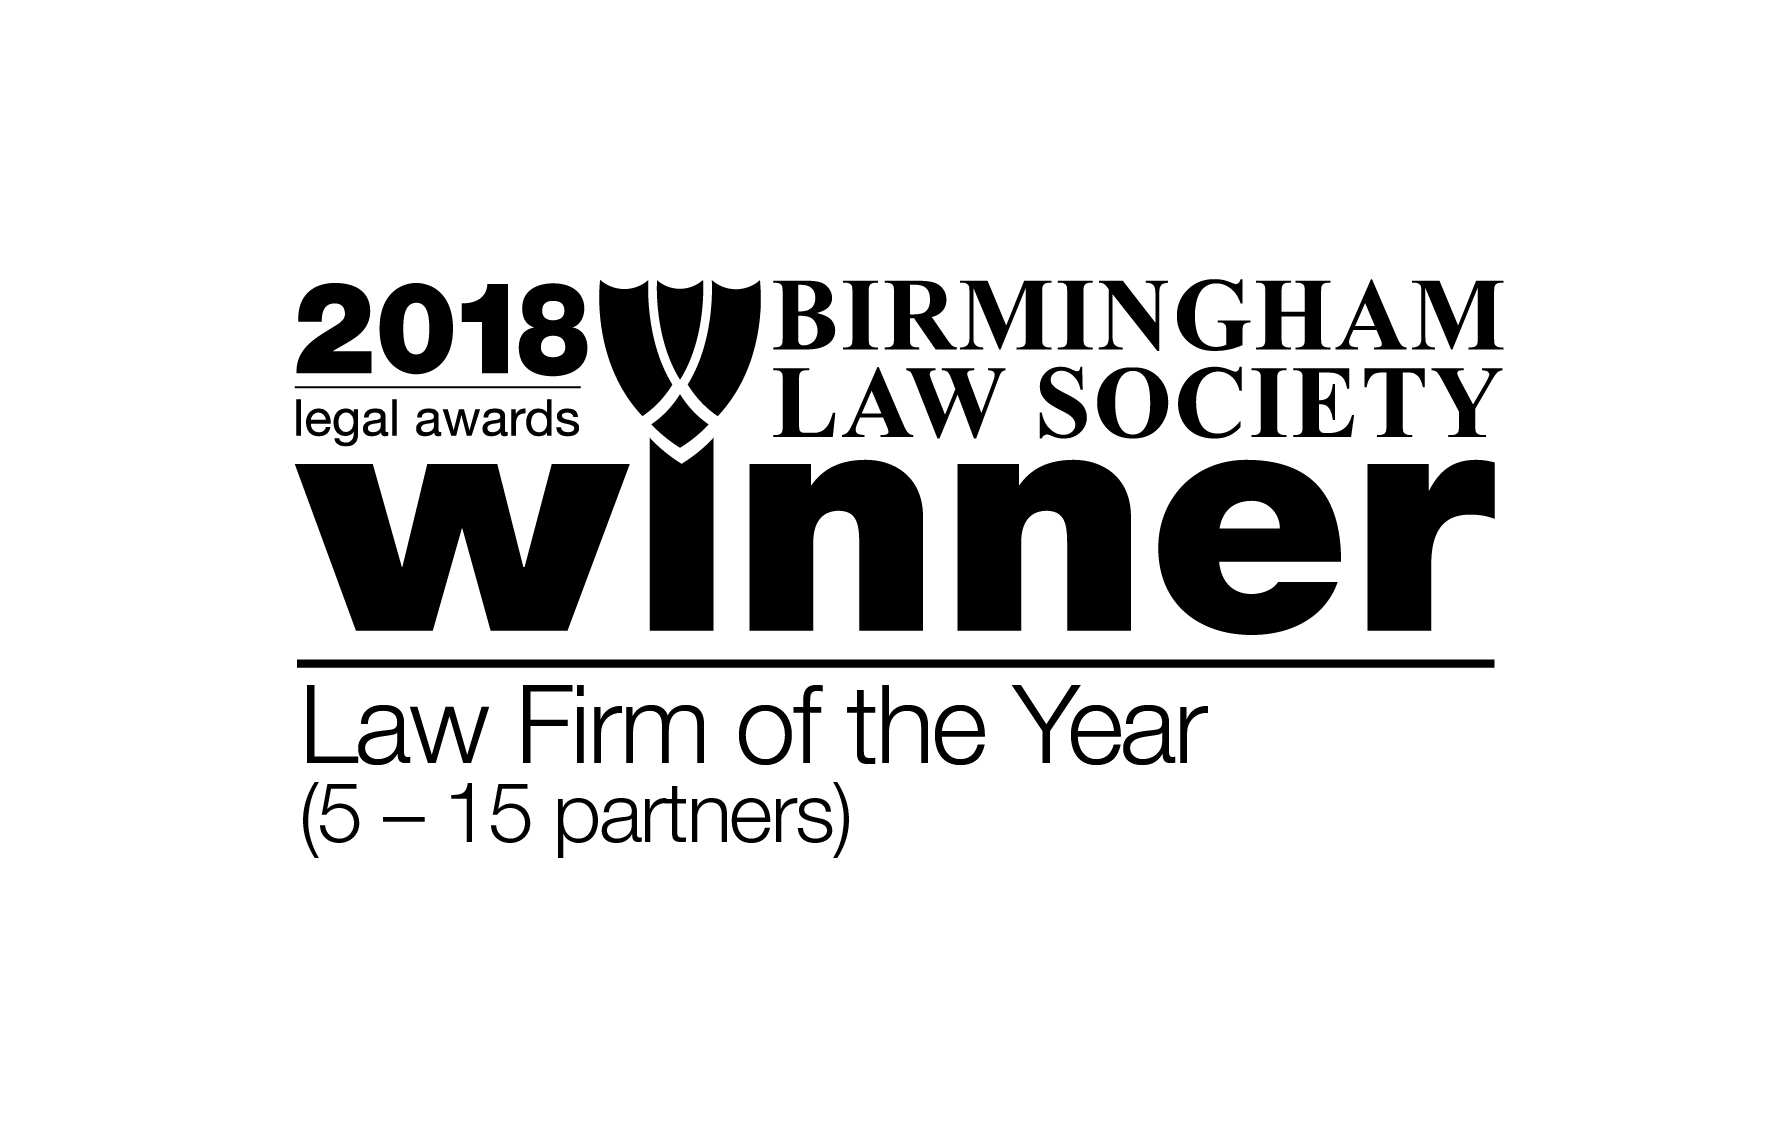 https://www.sydneymitchell.co.uk/sites/default/files/attachments/ls_winners_logos_2018_law_firm_of_the_year_5_-_15_partners_small.jpg#overlay-context=about-us/awards-accreditations